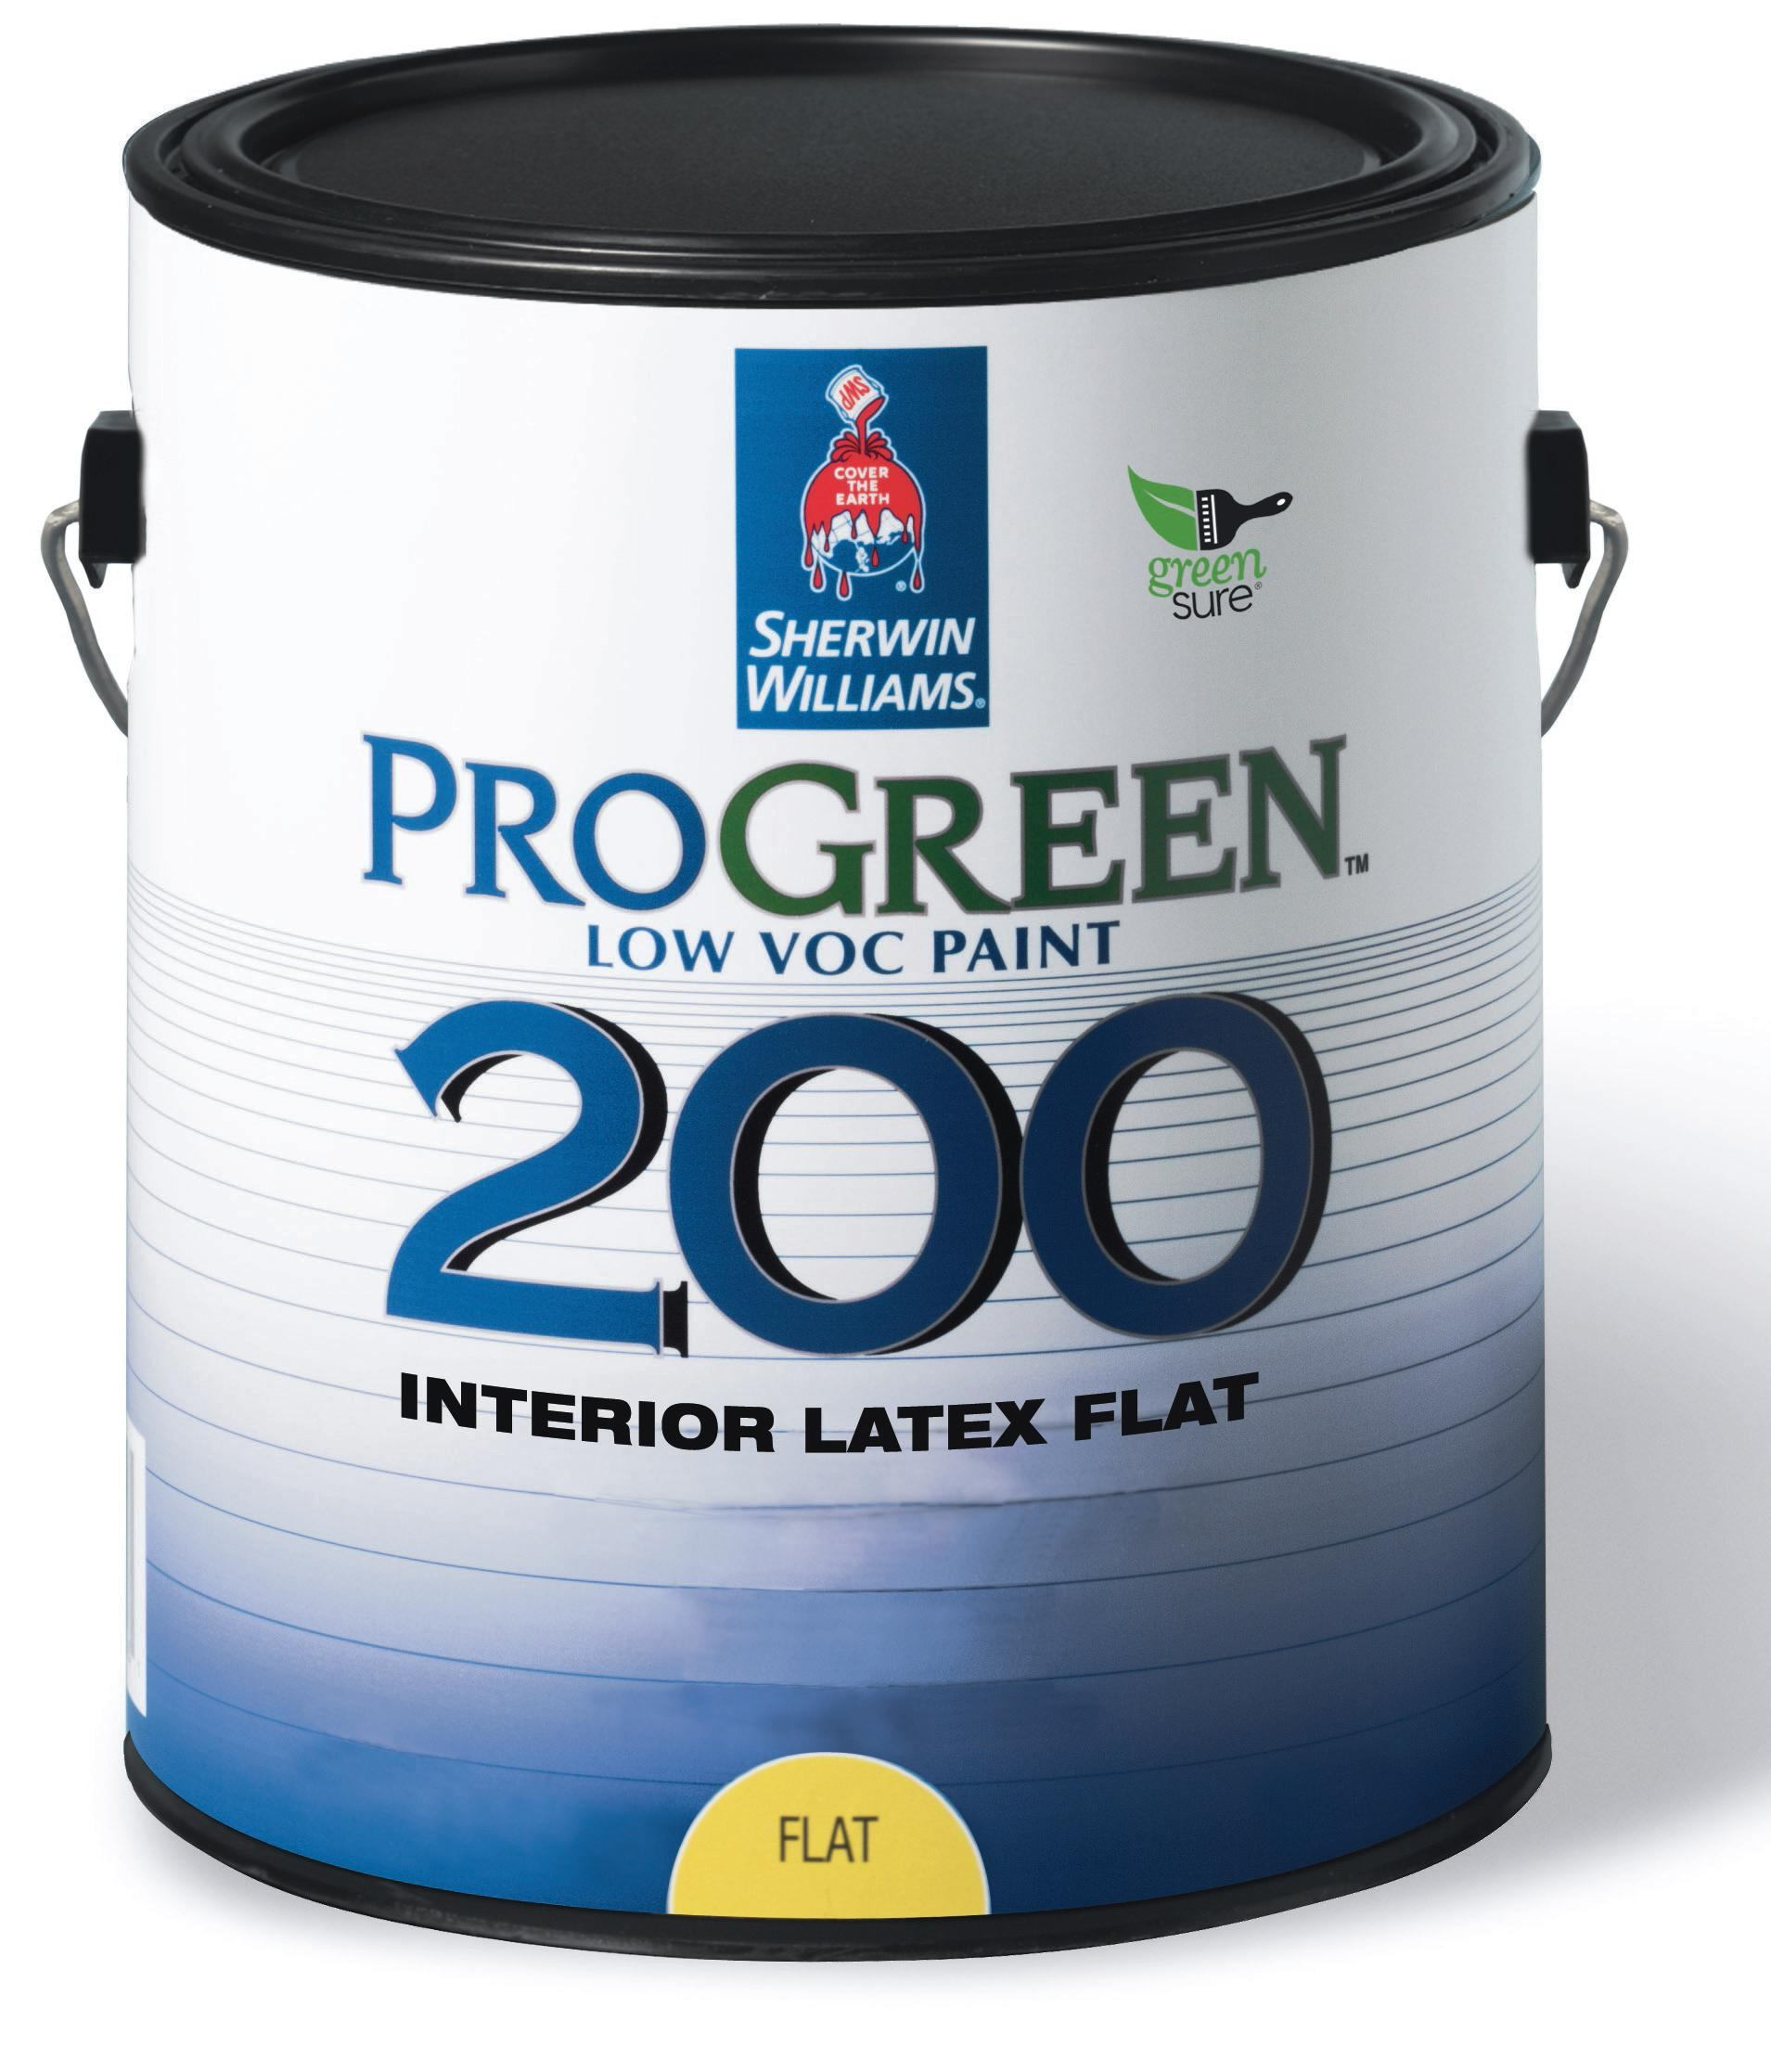 28 sherwin williams paint colors low voc